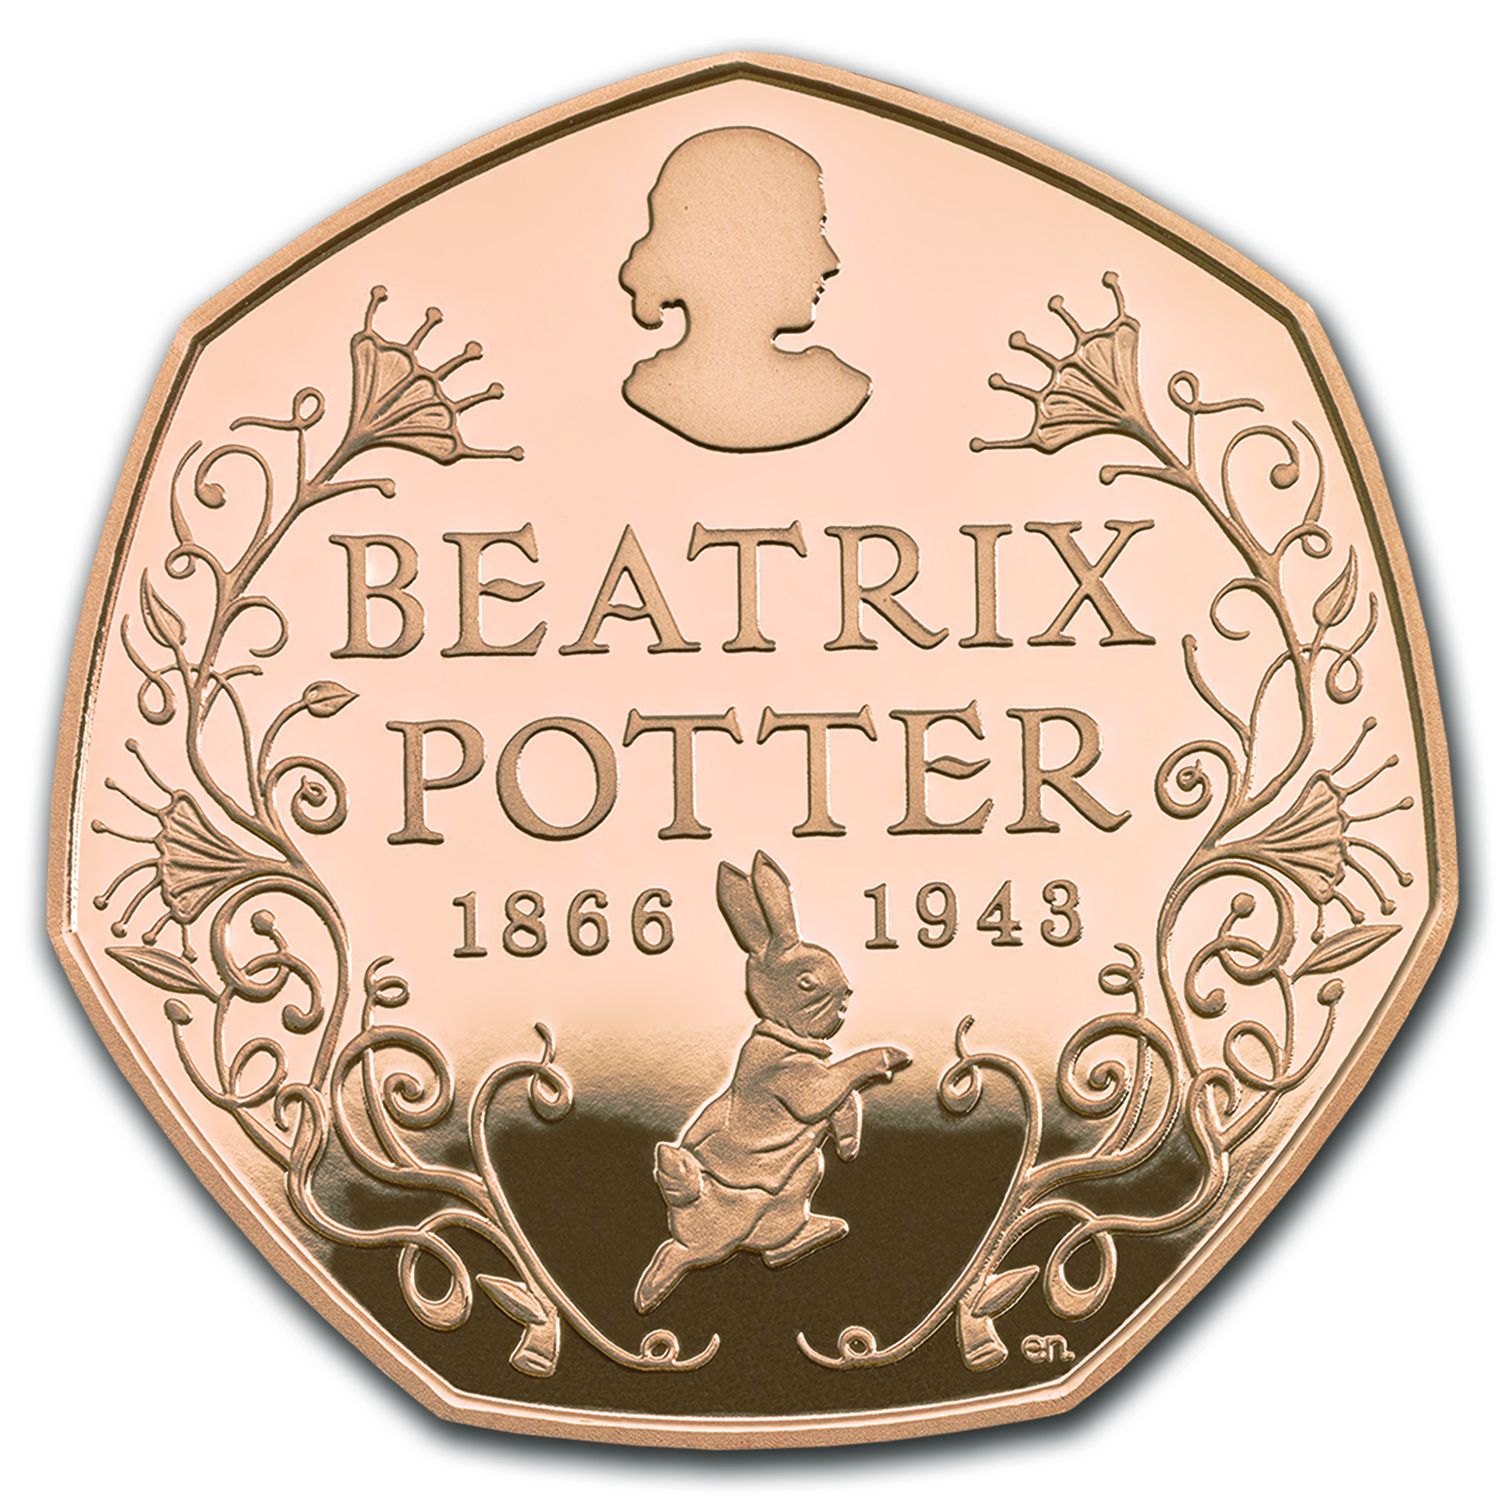 2016 Great Britain Gold 50 pence Beatrix Potter Proof